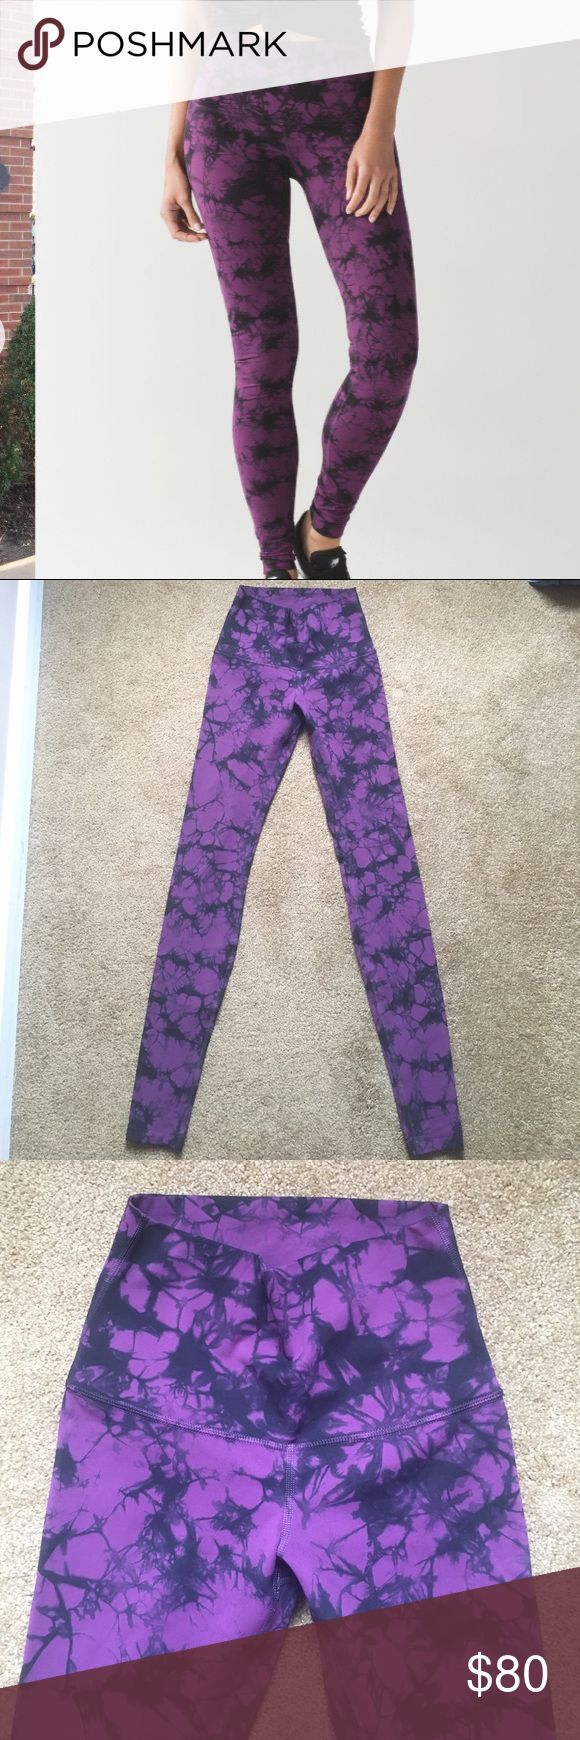 """Lululemon Wunder Under Pant Shibori Magenta 4 Lululemon Wunder Under Pant Shibori Darkest Magenta 4 Brand: Lululemon Style: Wunder Under Pant Color: Shibori Darkest Magenta Black (tie dye)--Stock pics show true color Fabric: Full on Luxtreme (Fullux) Features: high rise, 4 way stretch, sweat wicking Condition: Excellent used condition. No stains, holes, pilling or wear on the seams.  Approximate Measurements: Waist across top: 11.25"""" Waist across seam: 13"""" Hips: 13.75"""" Rise: 9.25"""" Inseam…"""